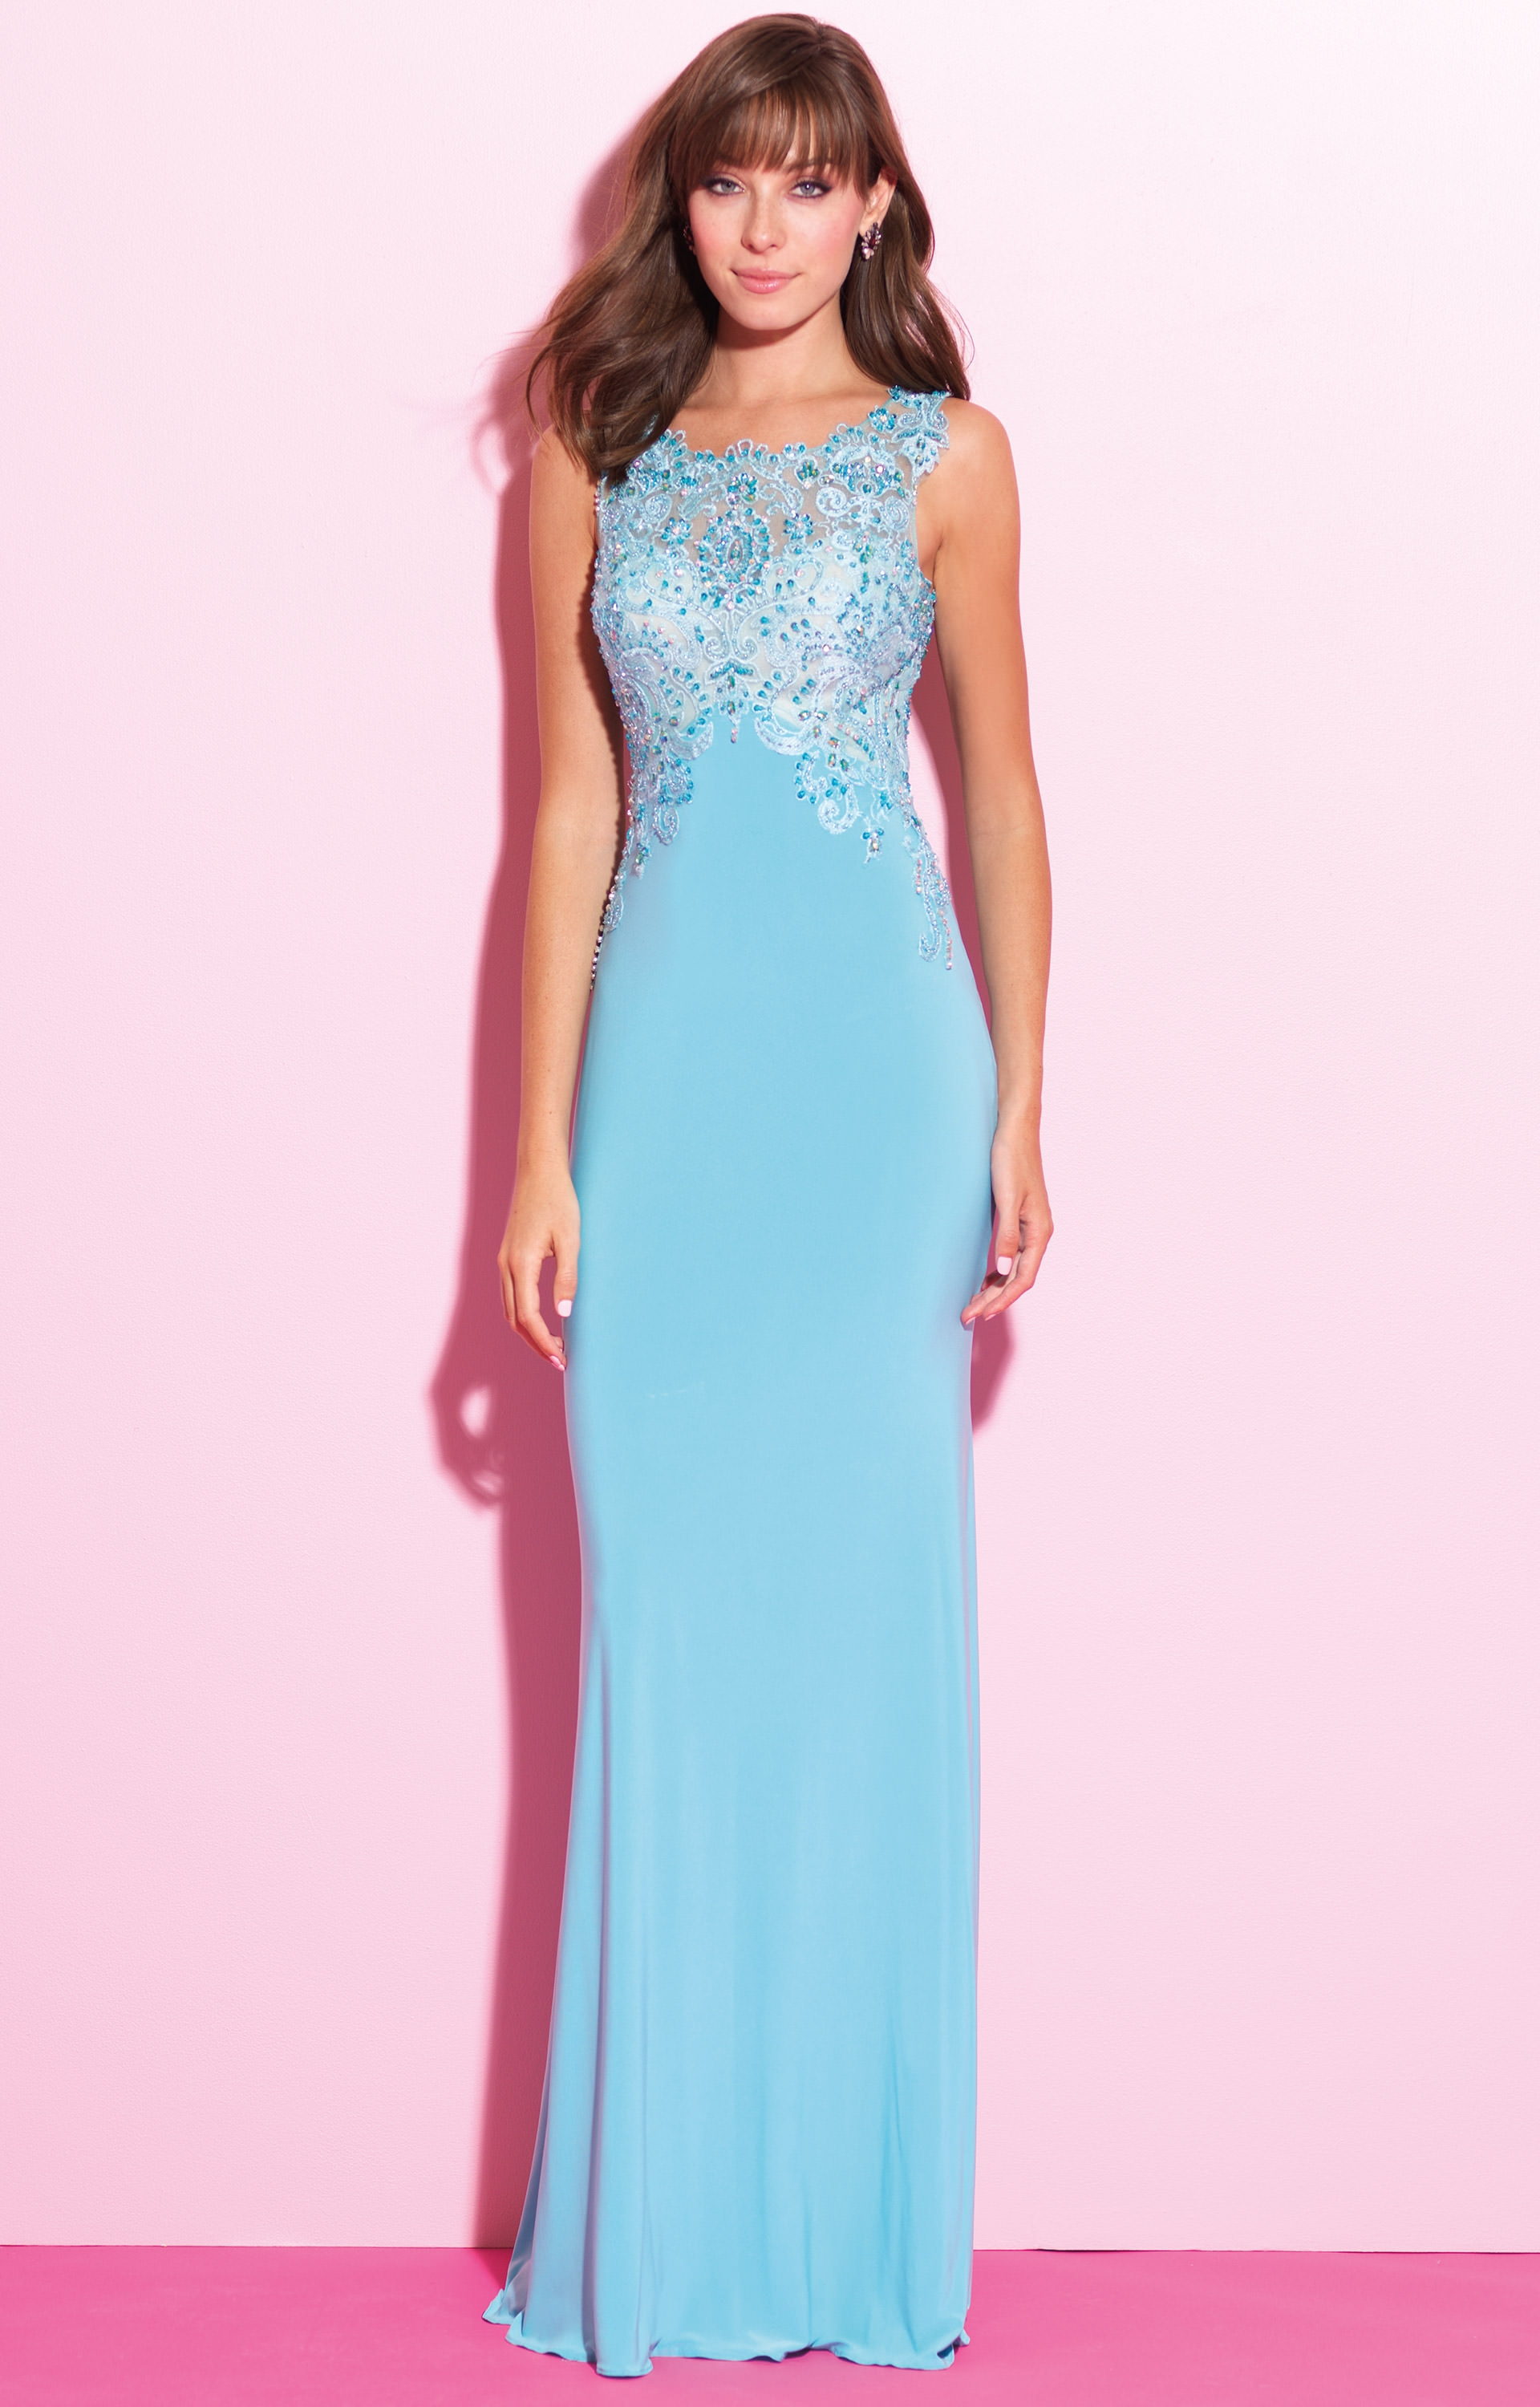 Madison James 17-275 - Sleeveless Jersey with Lace Applique Prom Dress